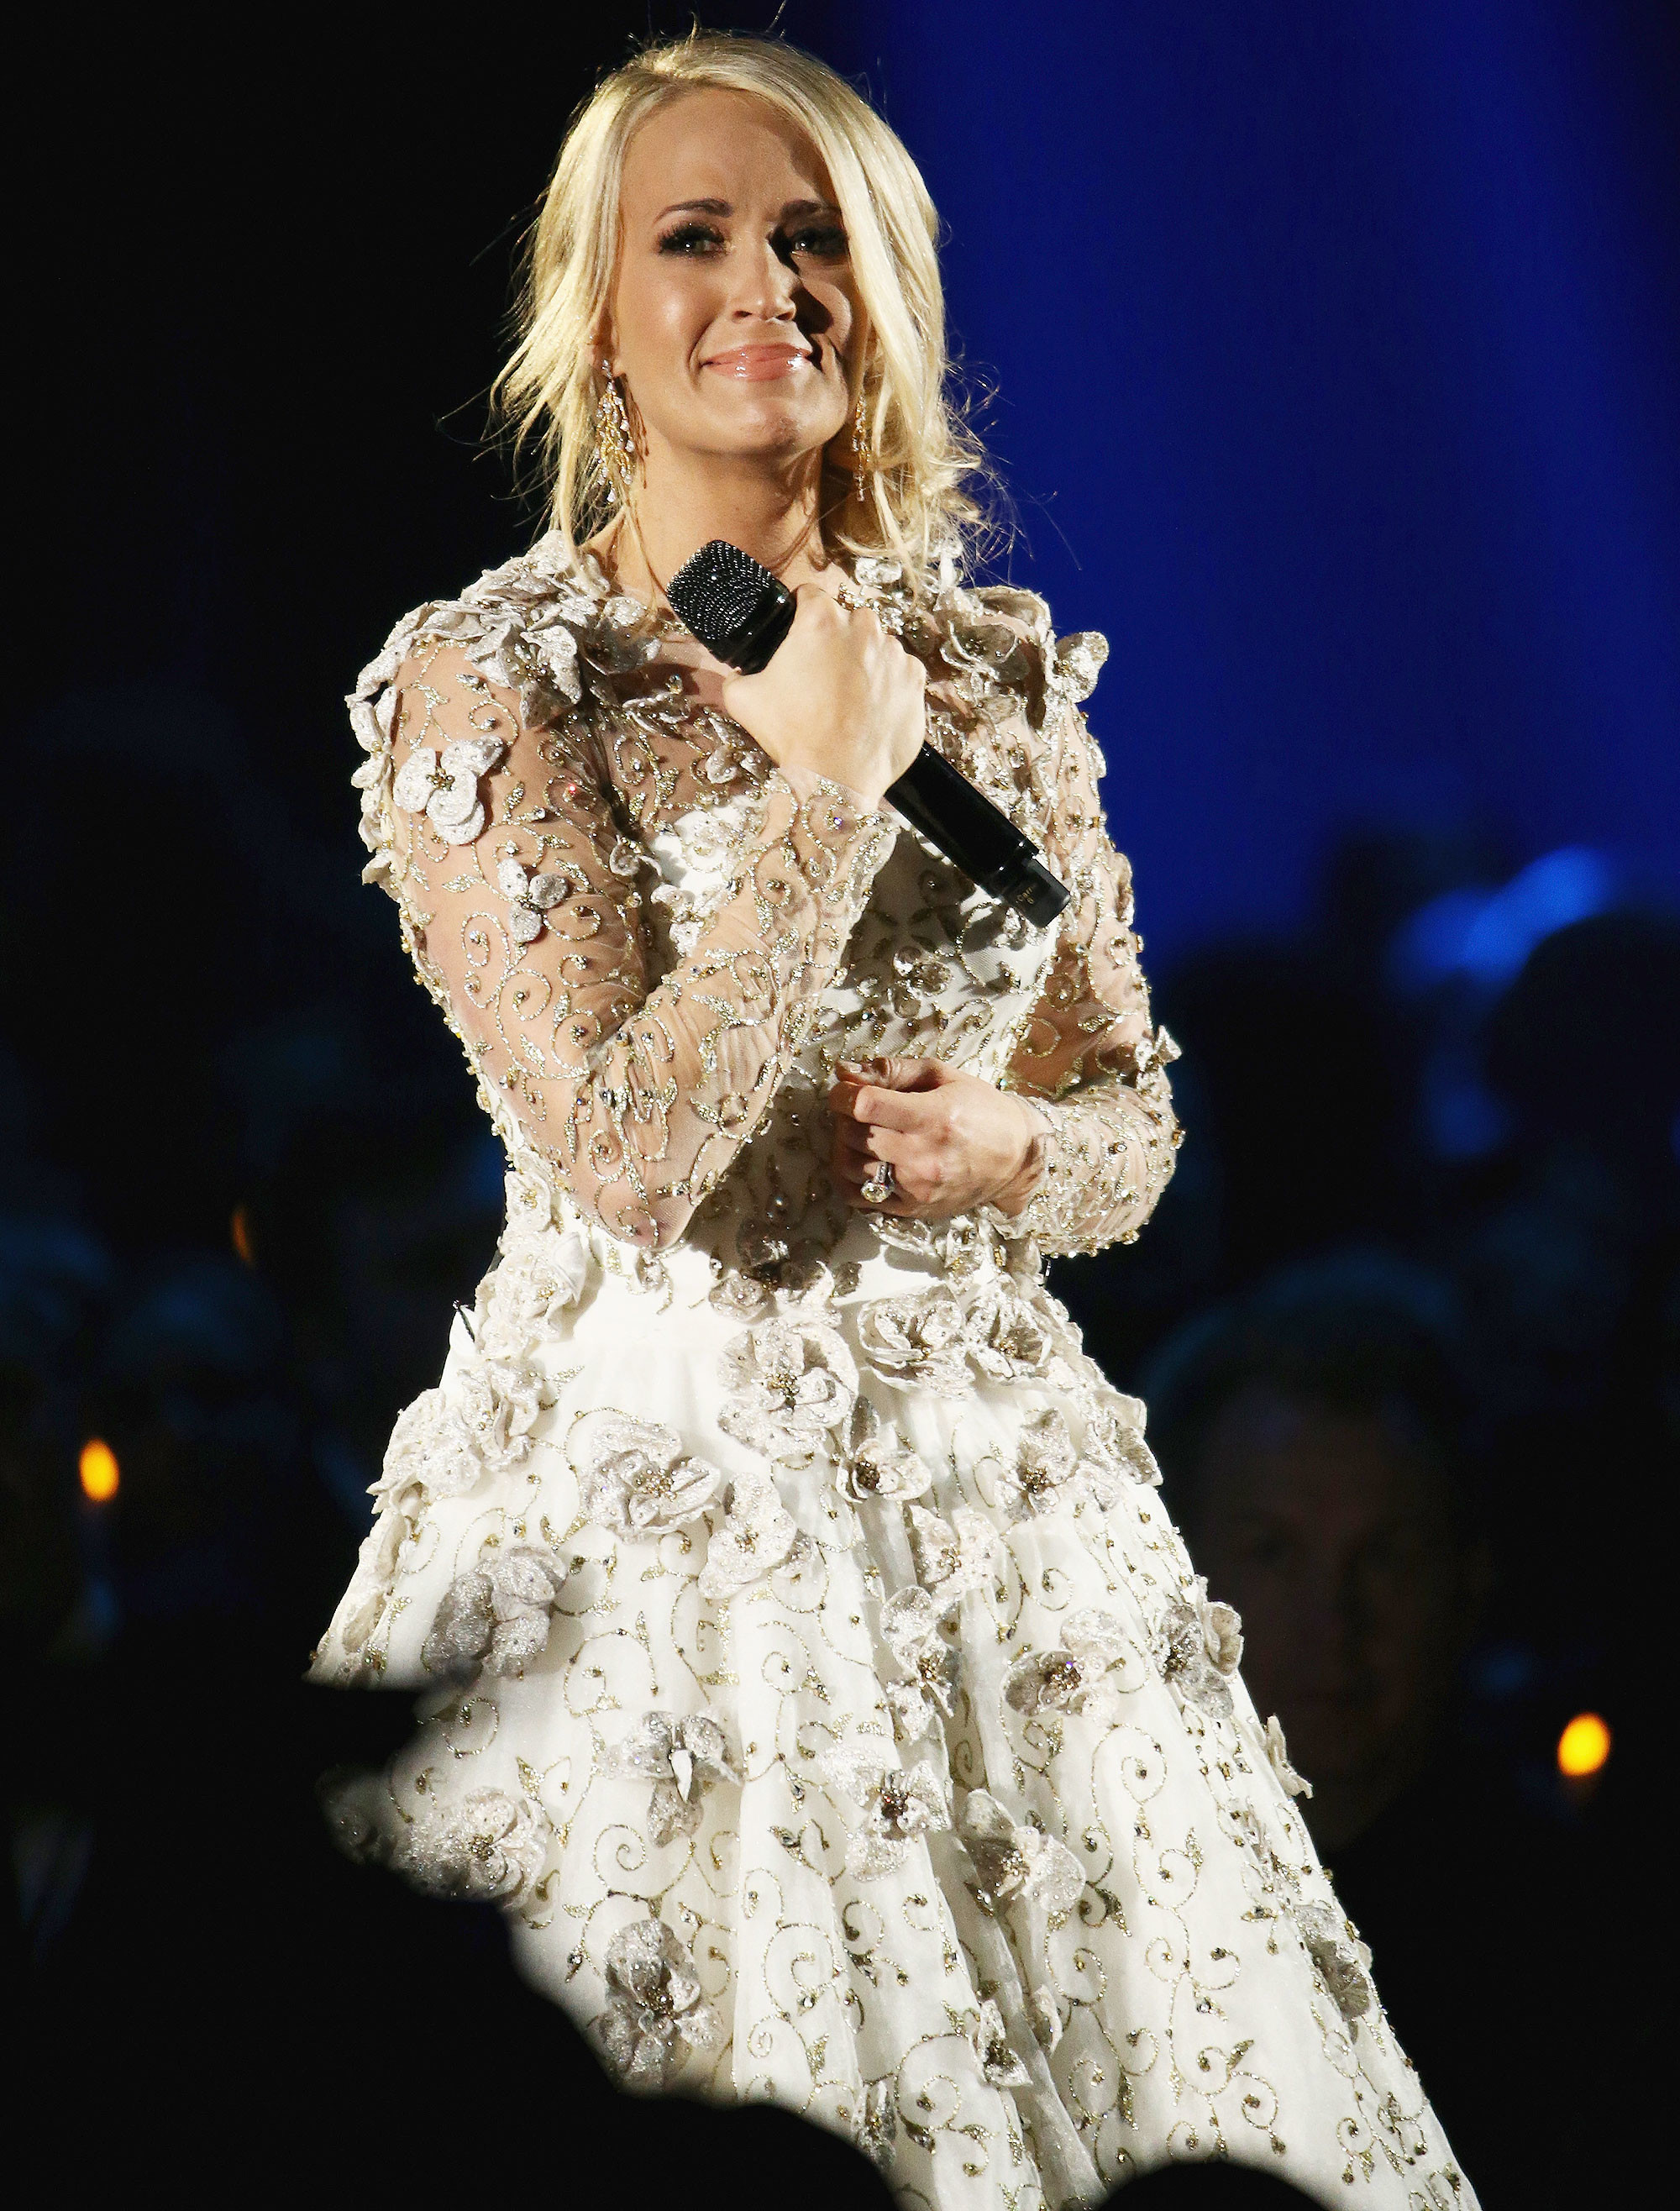 Carrie Underwood Breaks Wrist After a Fall: 'I'll Be Alright... Might Just Take Some Time'